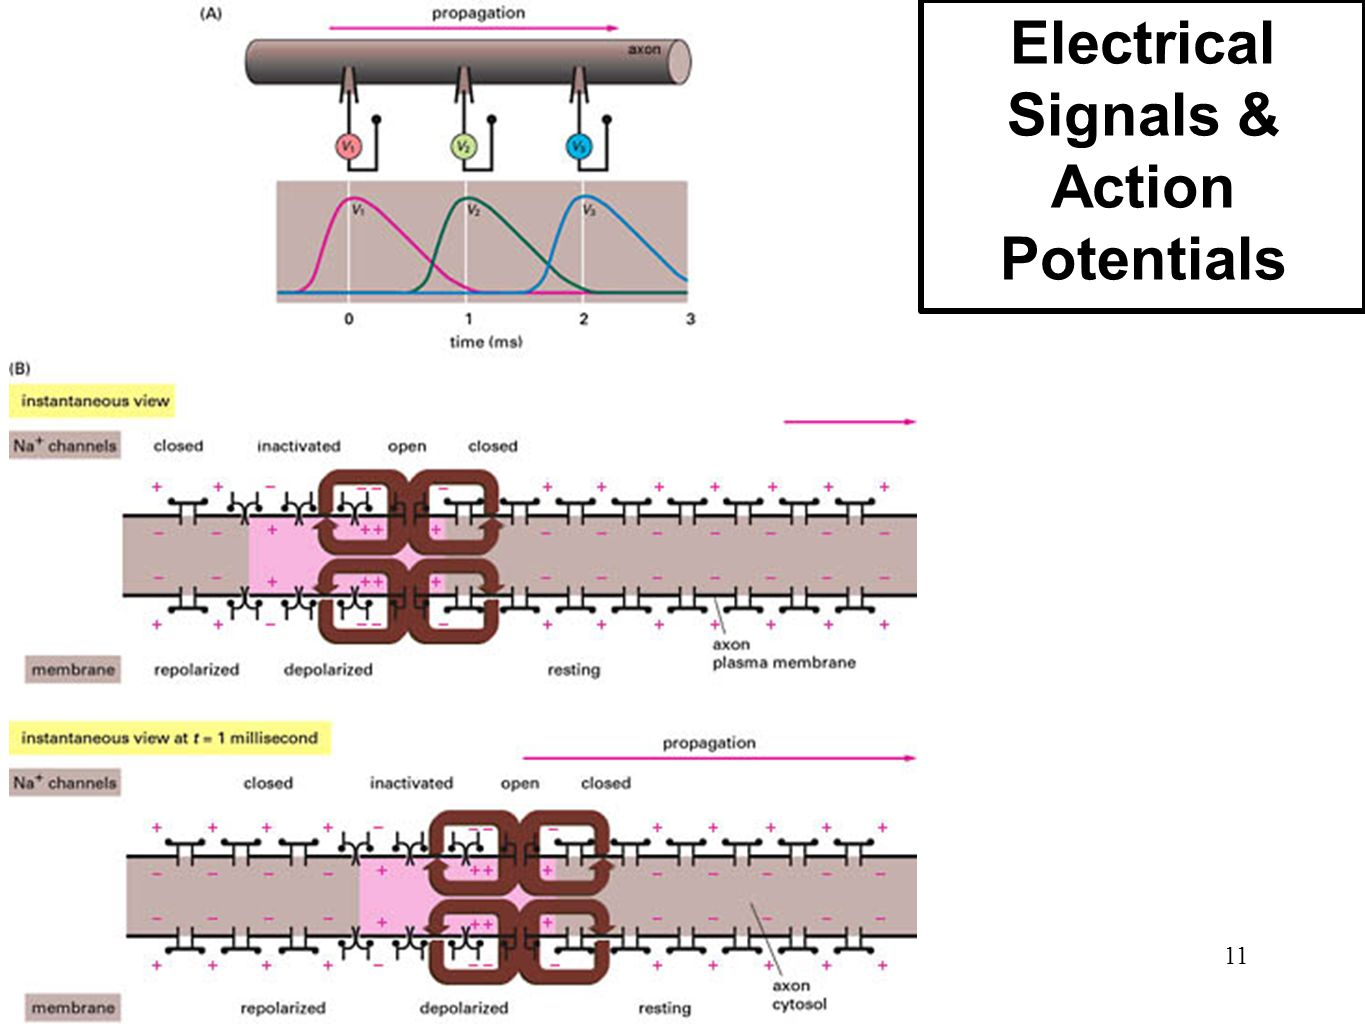 Electrical Signals & Action Potentials